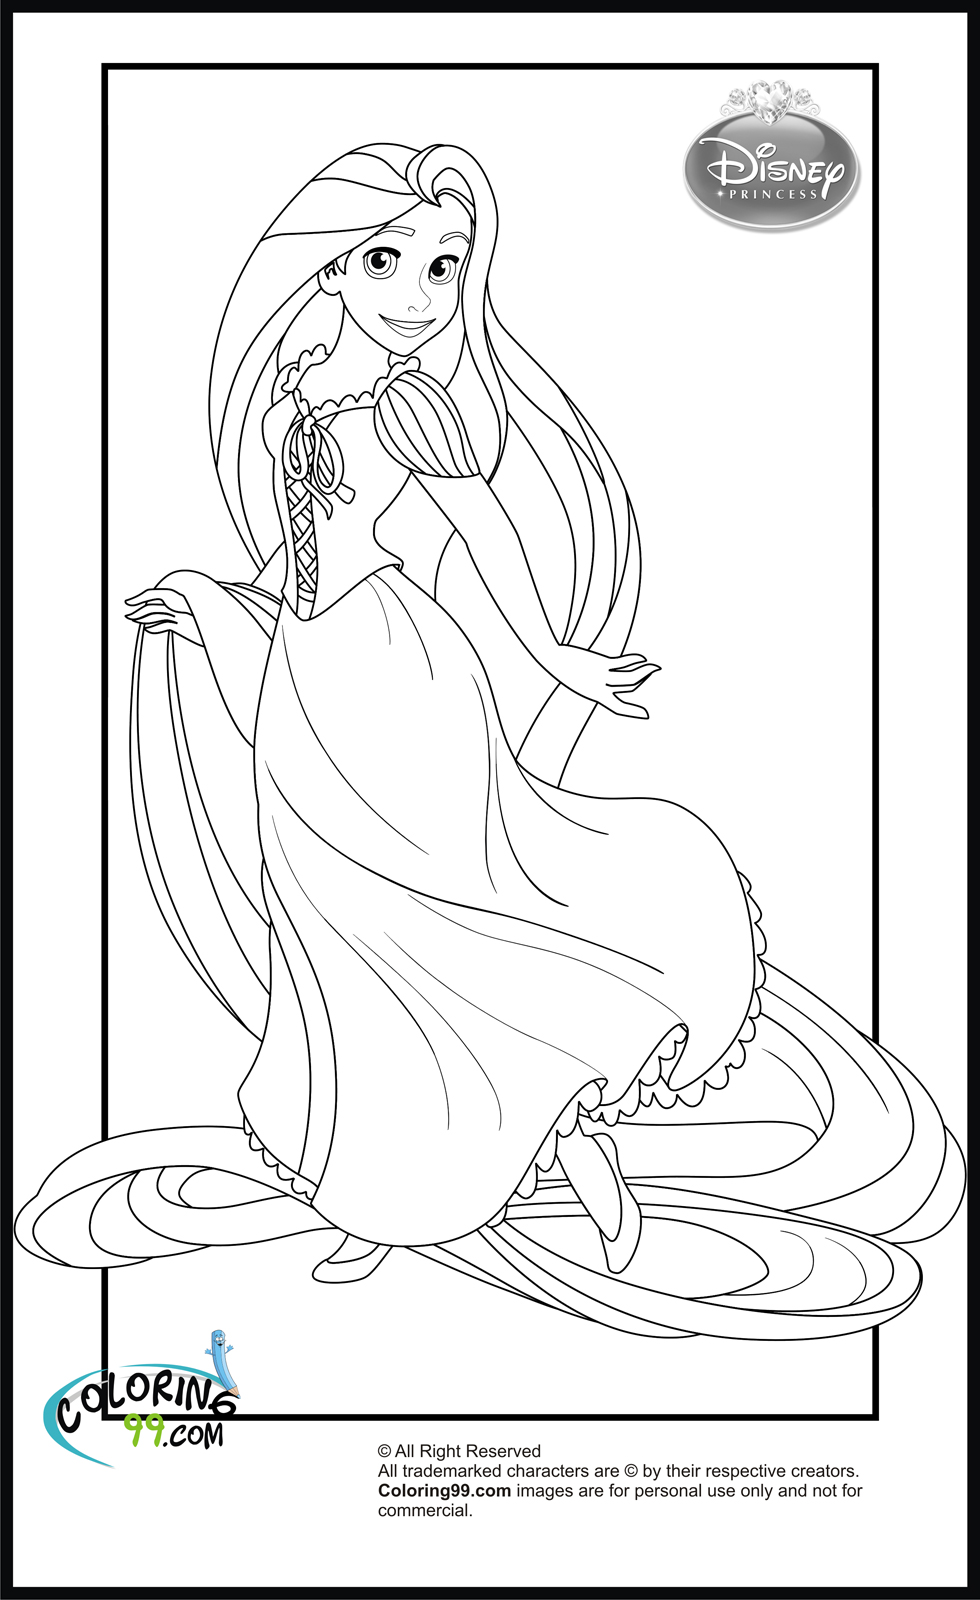 colorings pages free printable tangled coloring pages for kids cool2bkids colorings pages 1 1